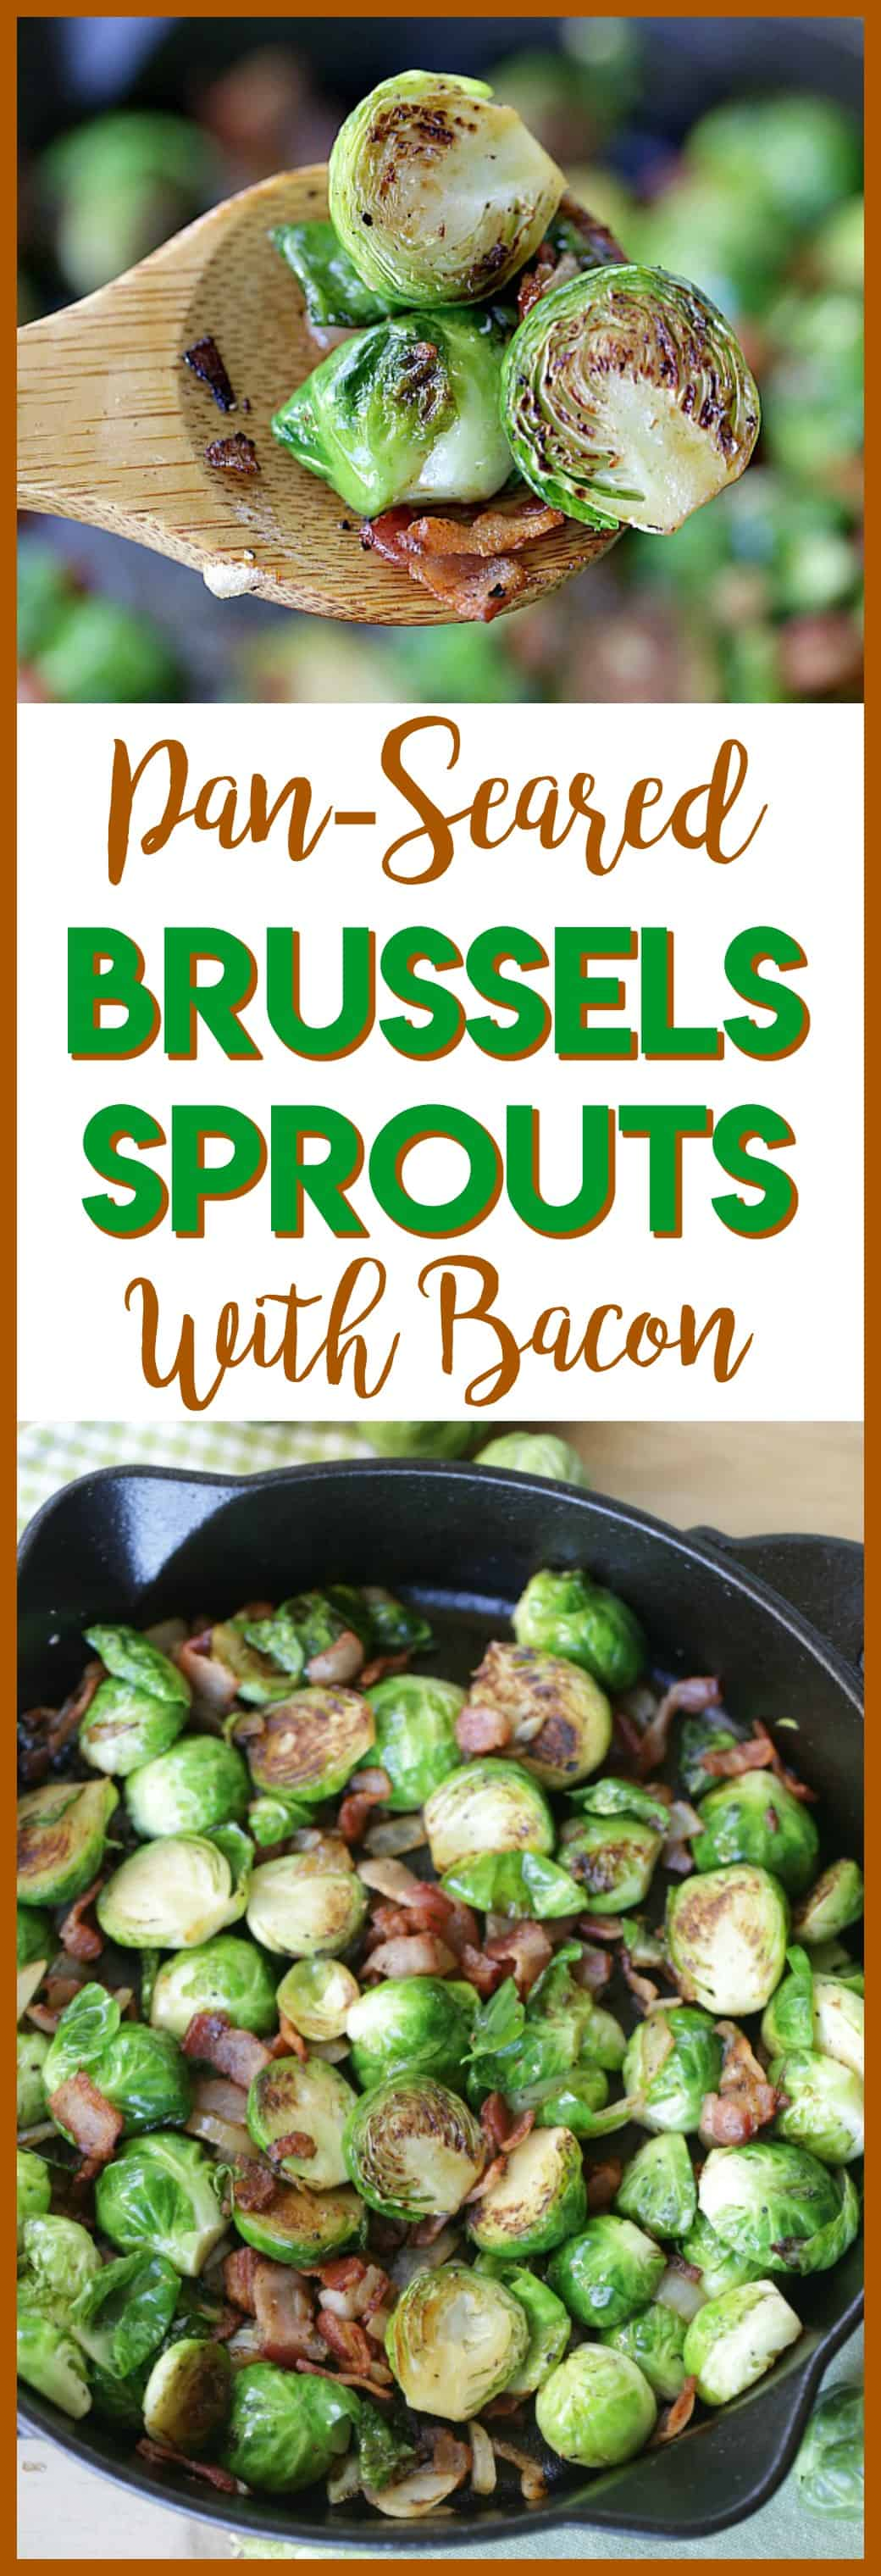 Pan Seared Brussels Sprouts With Bacon are a super quick side dish ready in 20 minutes flat! It's the perfect recipe to serve at Thanksgiving or for a weeknight meal. #SideDish #Recipe #Thanksgiving